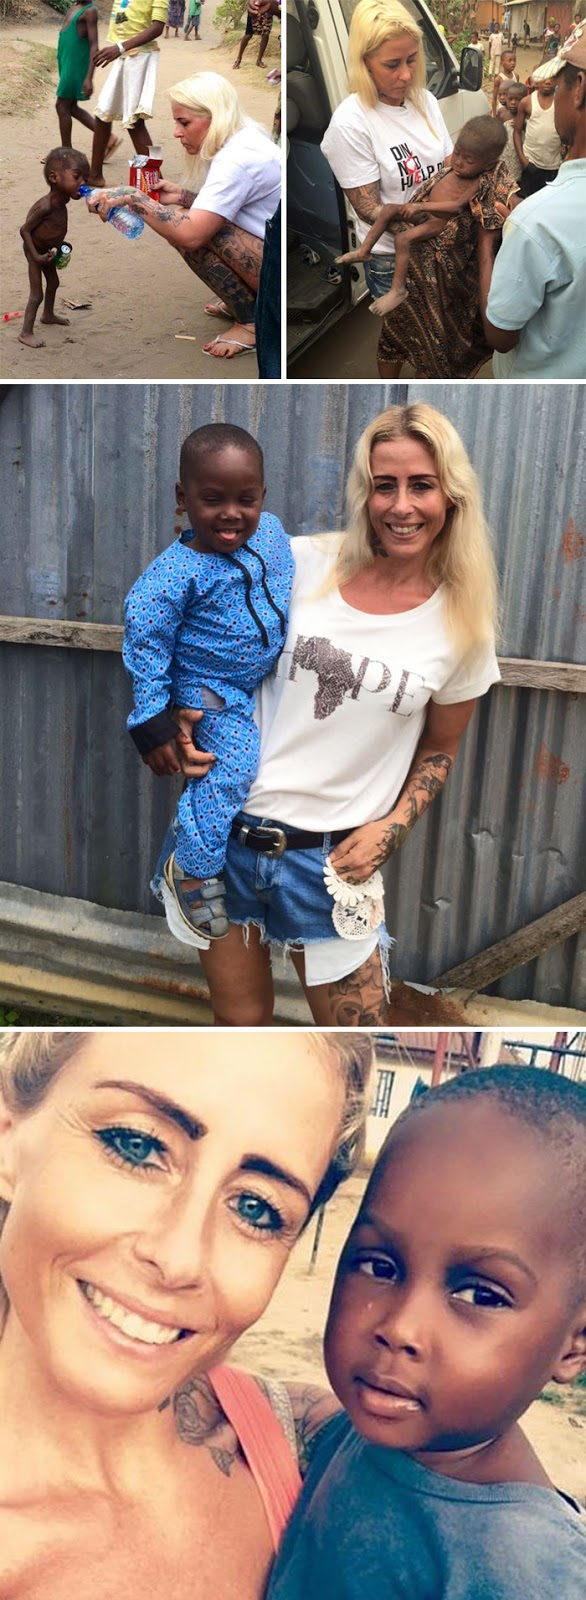 40 Times 2016 Restored Our Faith In Humanity - Danish Woman Rescues 2-Year-Old Nigerian Boy Who Was Abandoned And Left To Die Because His Parents Thought He Was A Witch